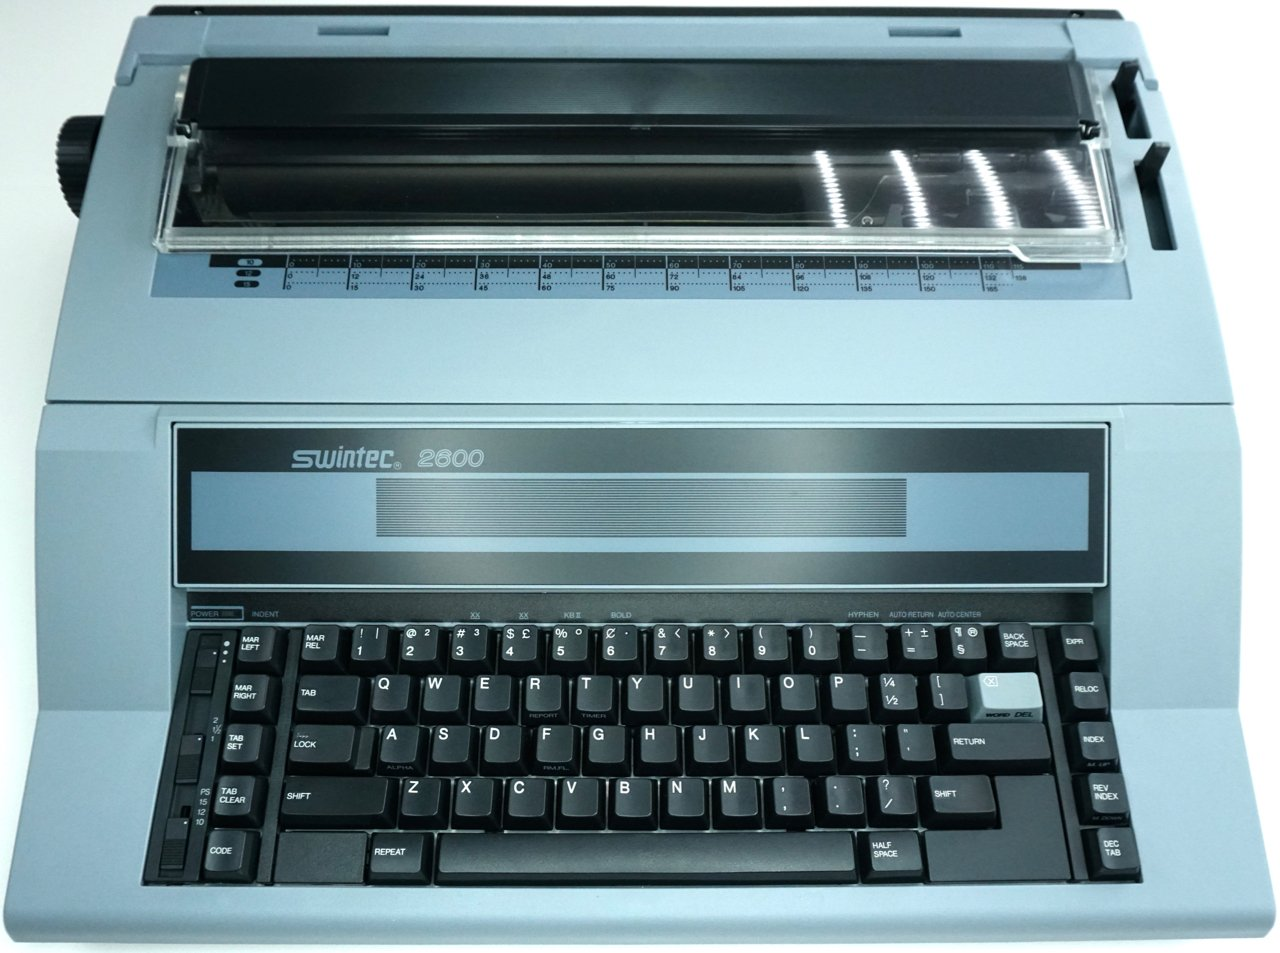 Amazon.com : Swintec 2600 Typewriter : Electronic Typewriters : Office Products